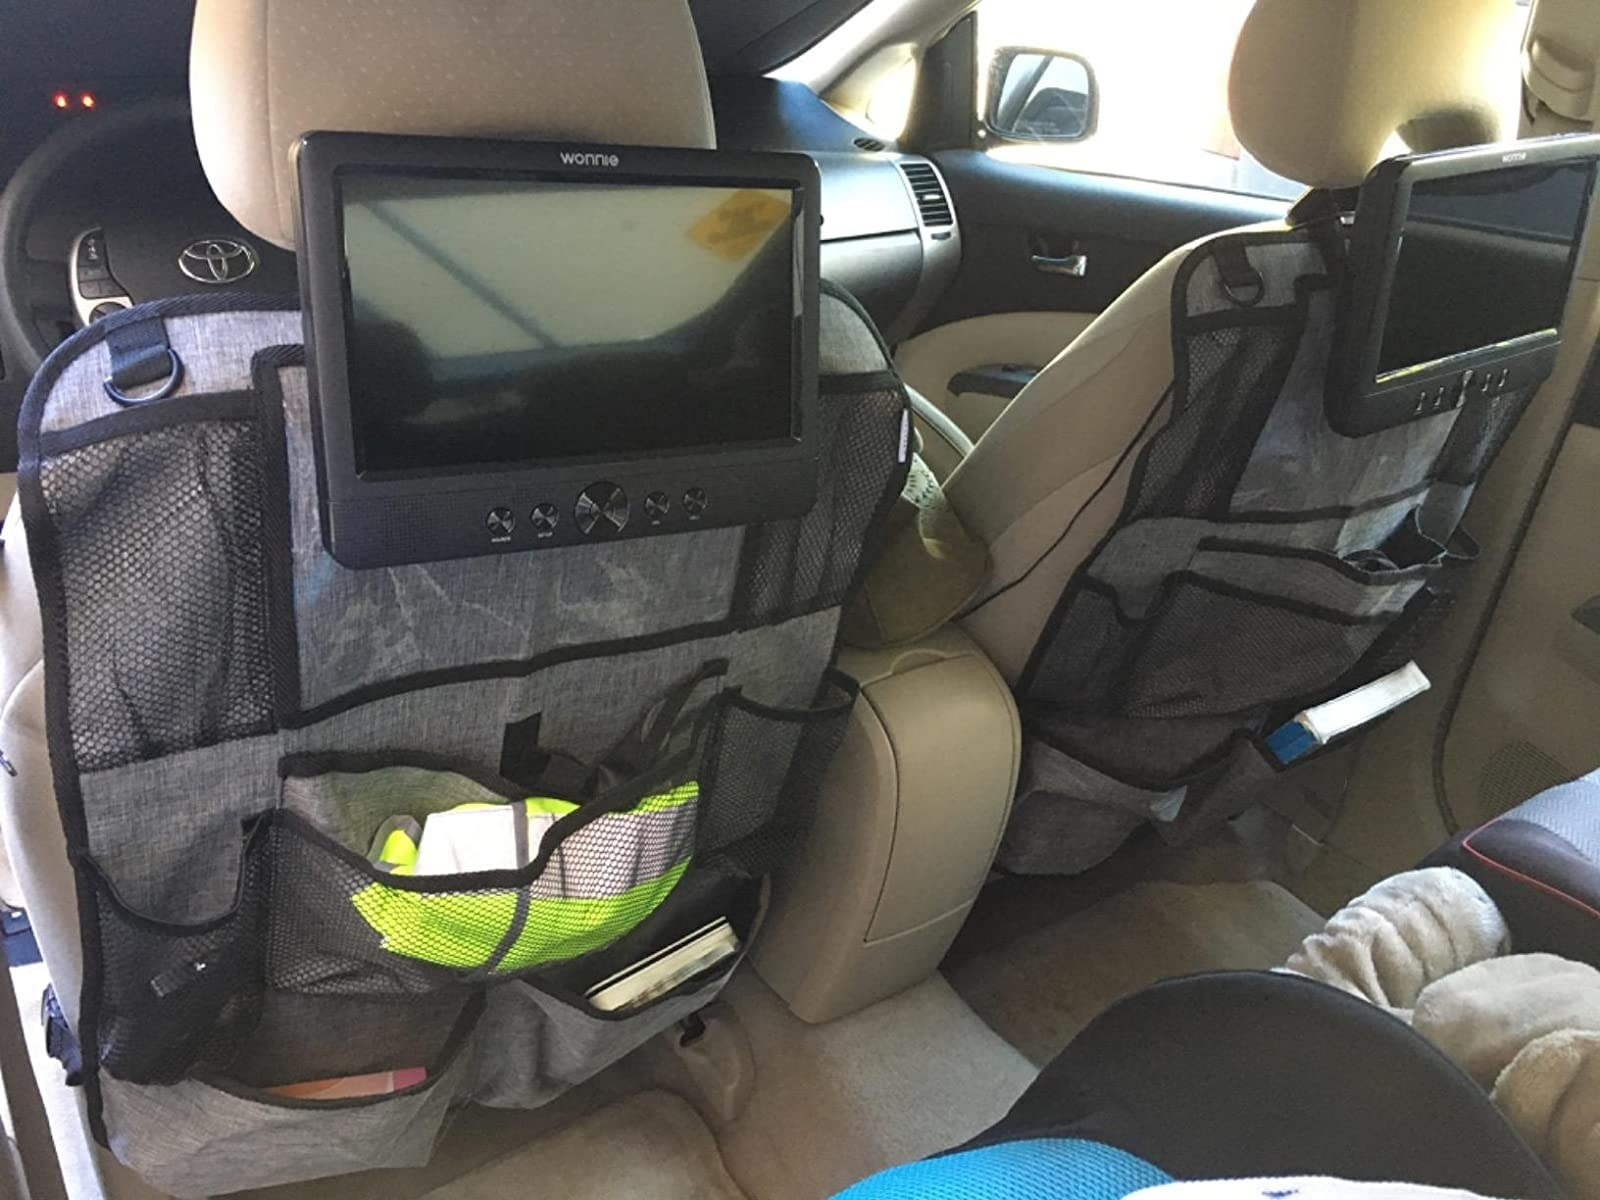 Reviewer image of two helteko backseat organizers in a car